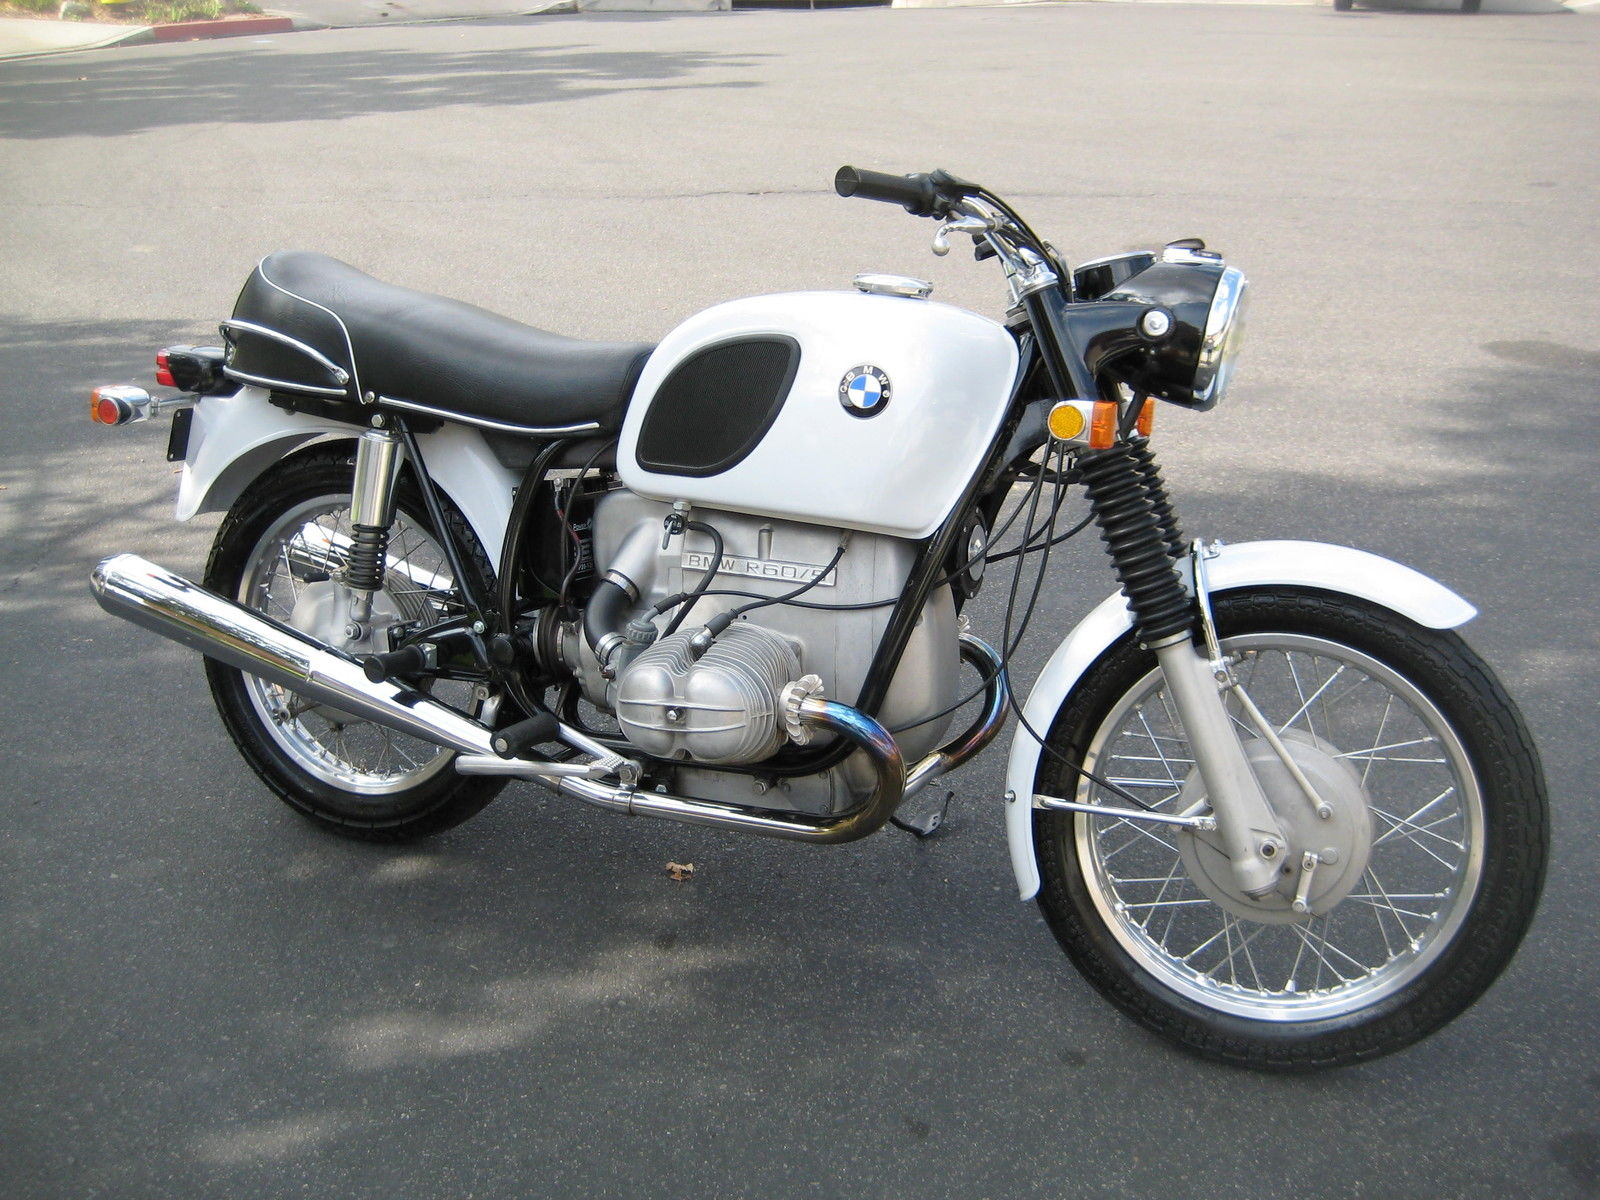 restored bmw r60 5 1971 photographs at classic bikes. Black Bedroom Furniture Sets. Home Design Ideas